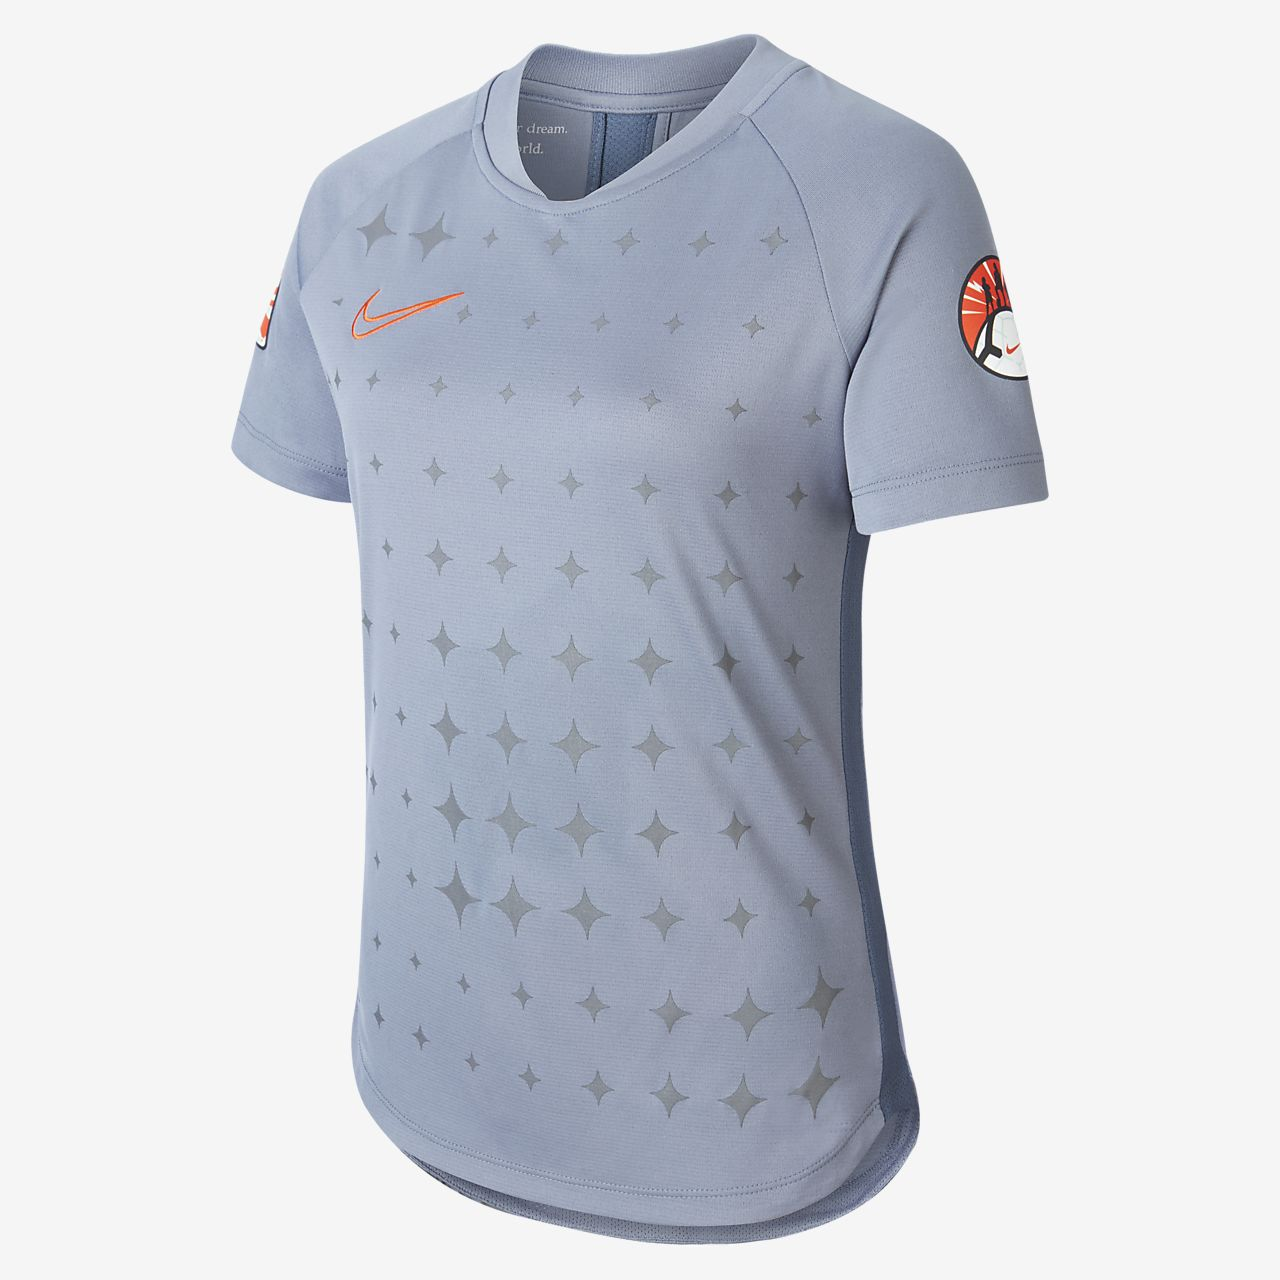 Nike Dri-FIT Older Kids' (Girls') Short-Sleeve Football Top